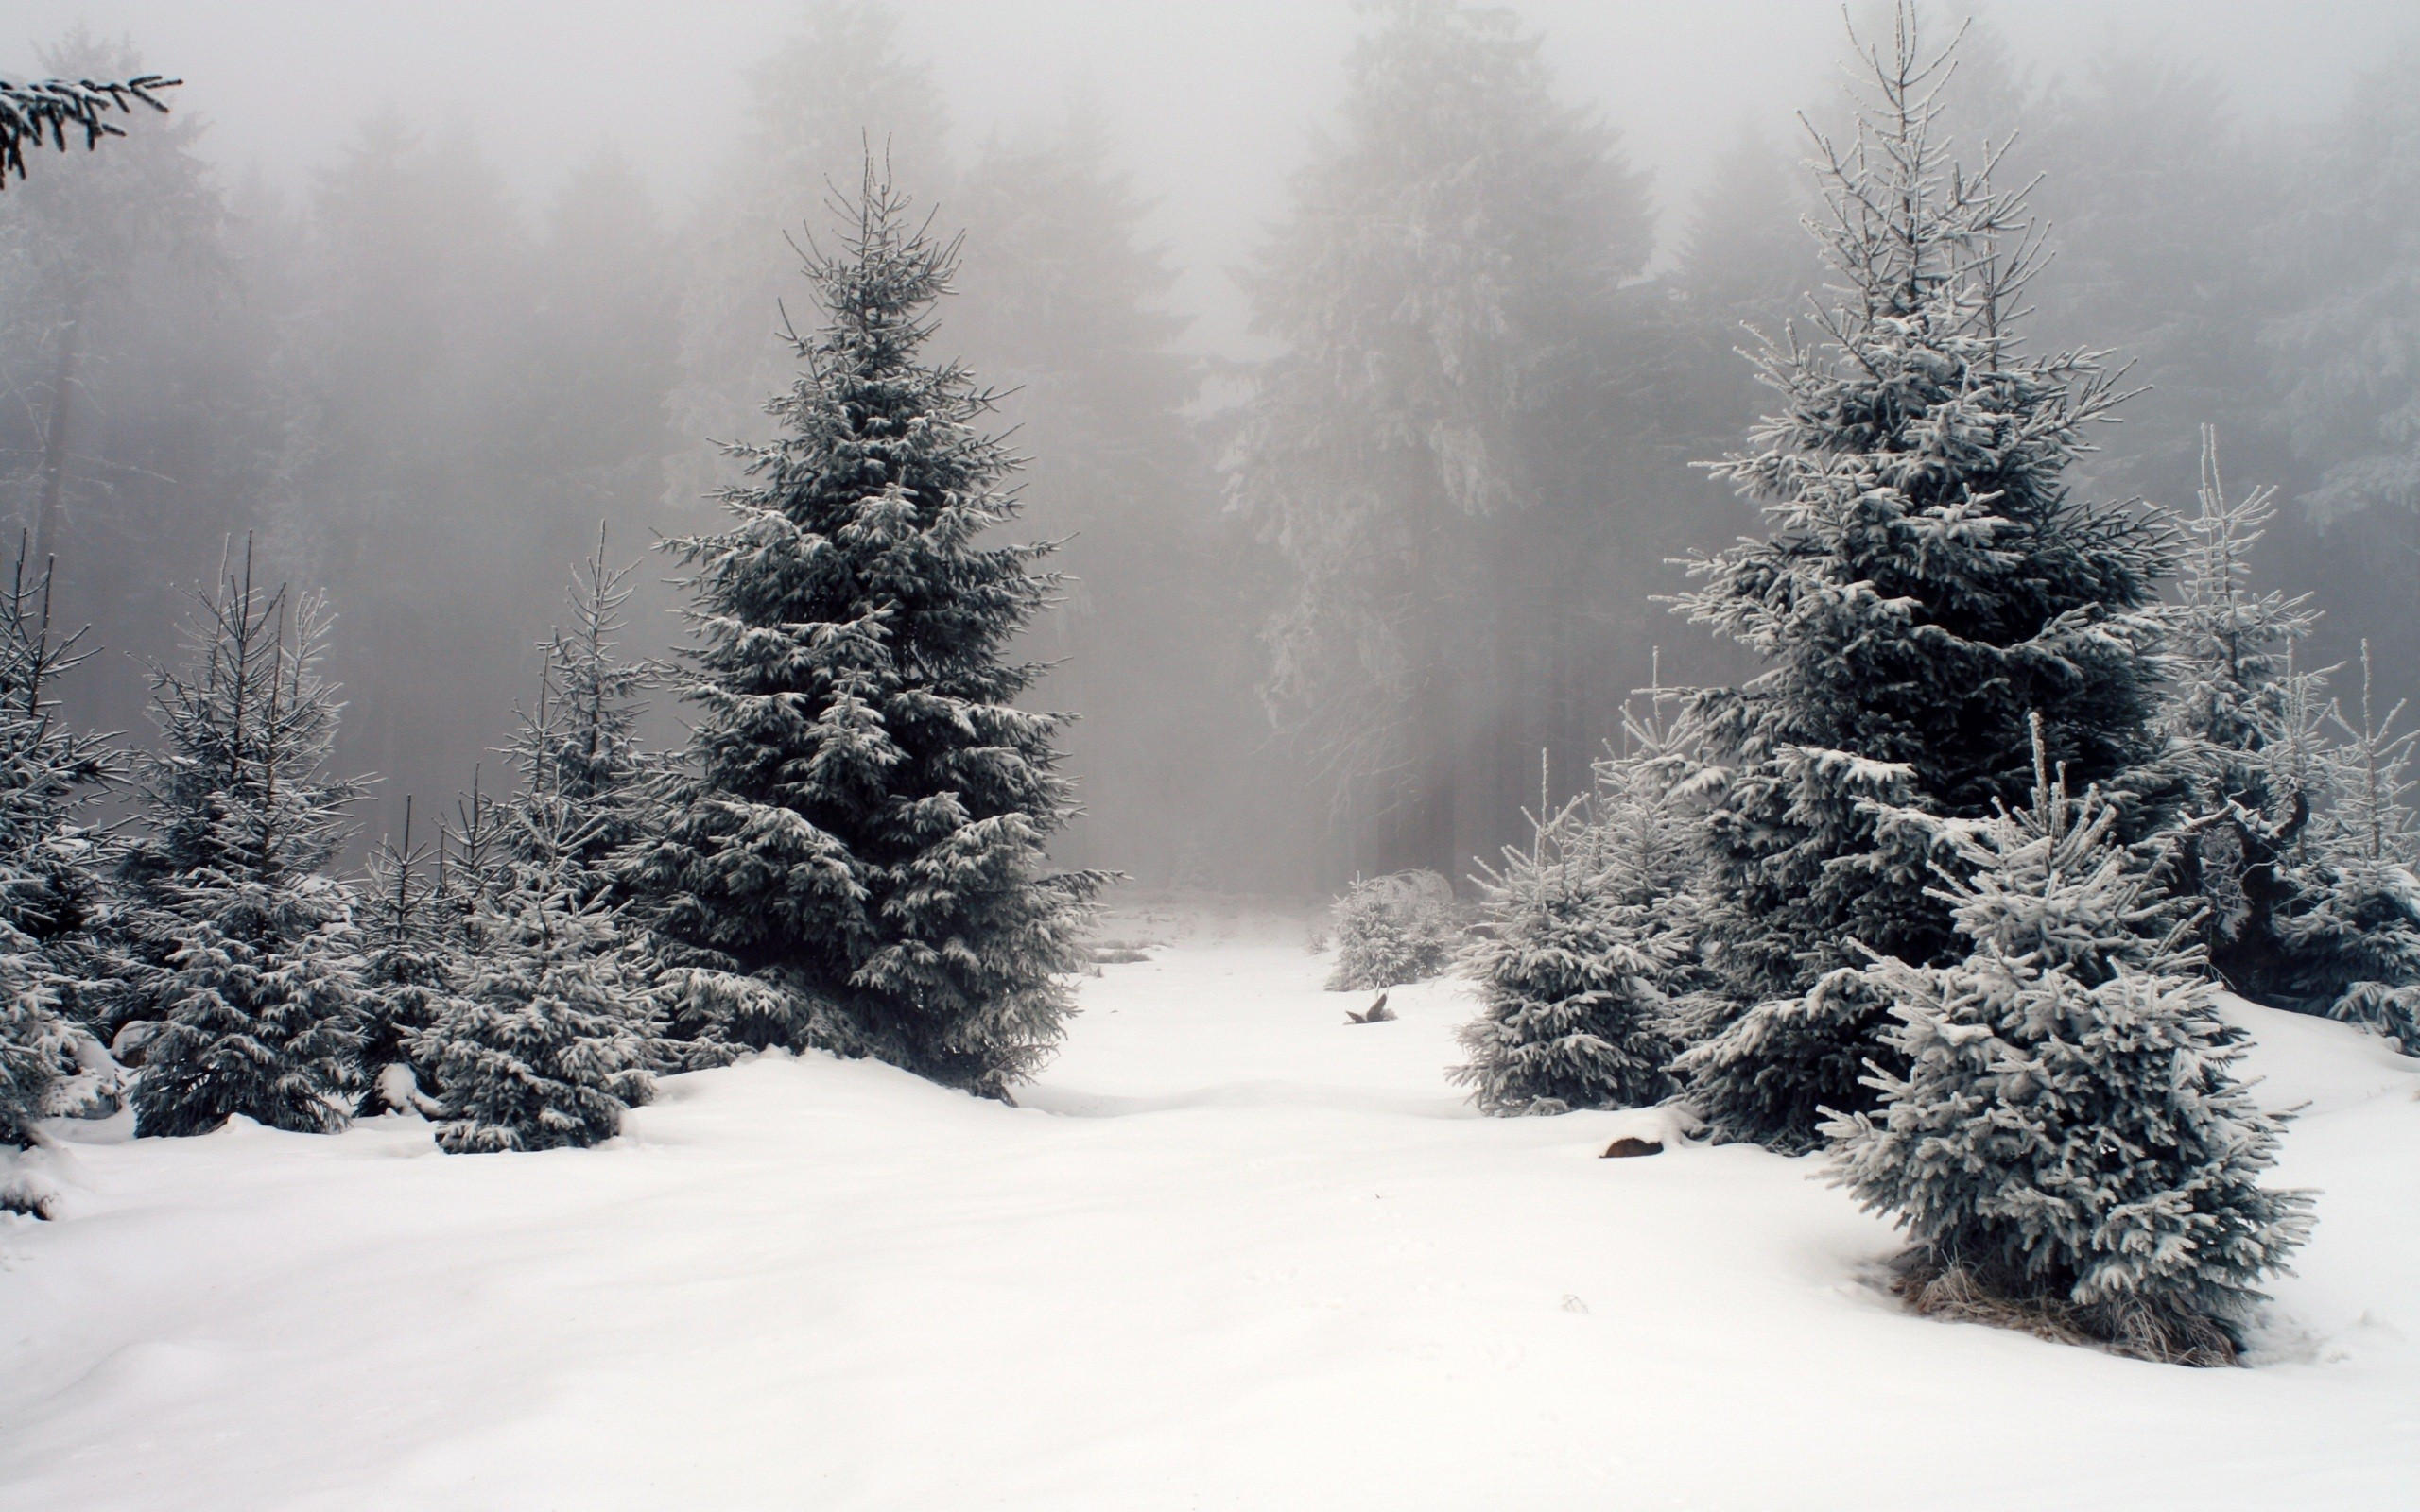 2560x1600 foggy winter forest wallpaper 13897